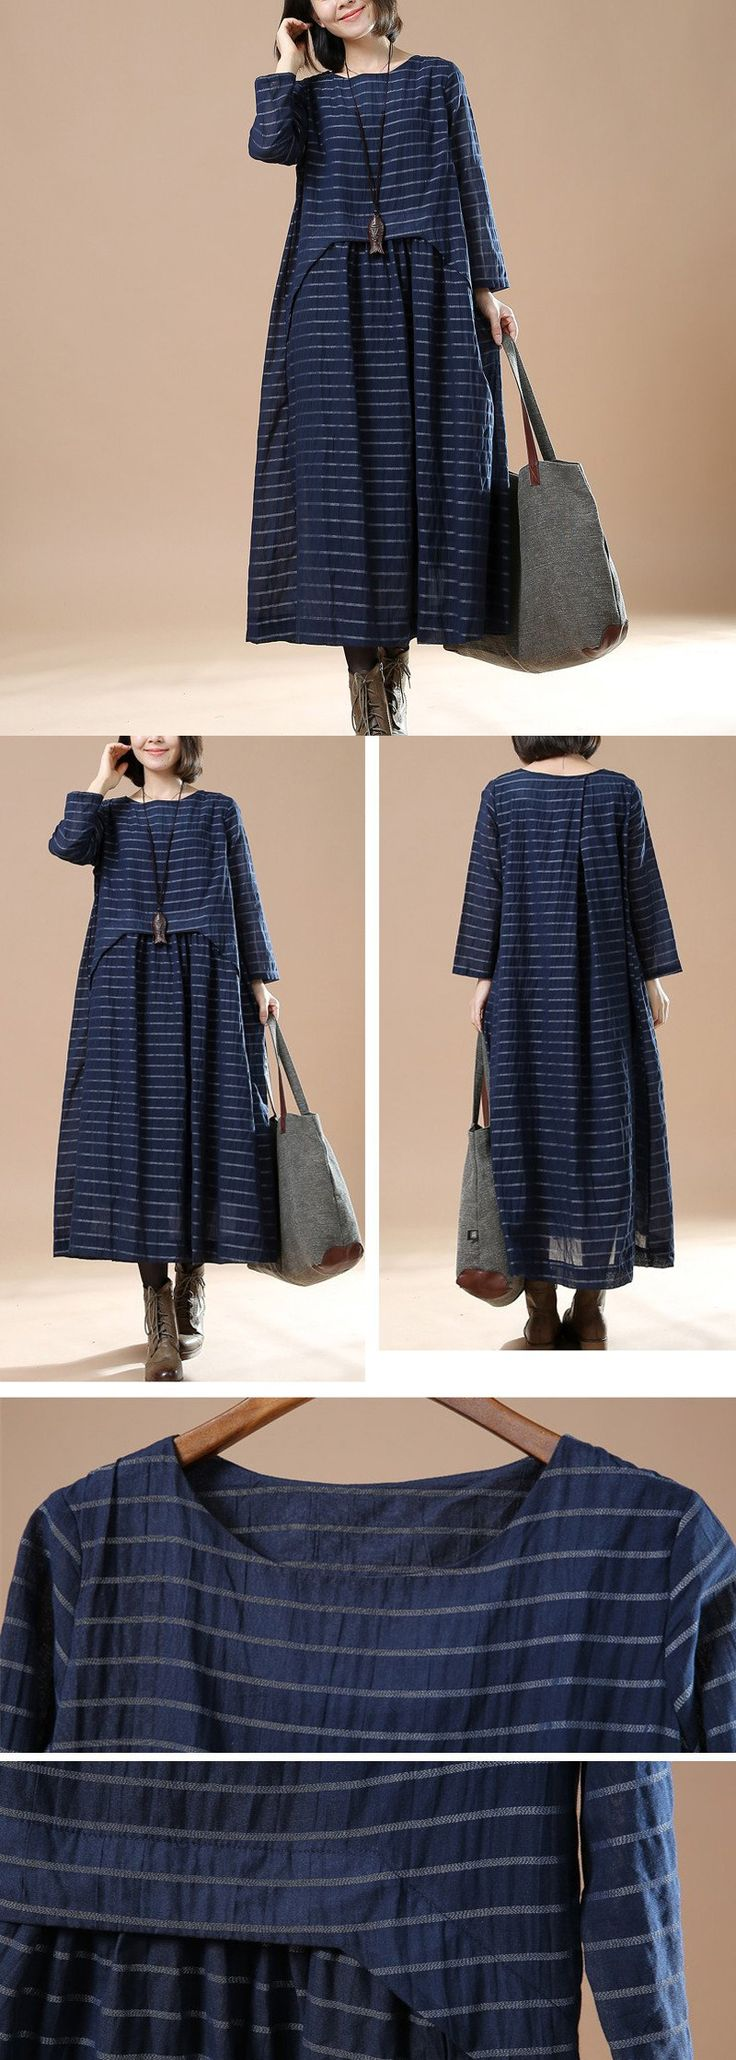 Blue Women 100% cotton loose long sleeve dress. buykud dresses